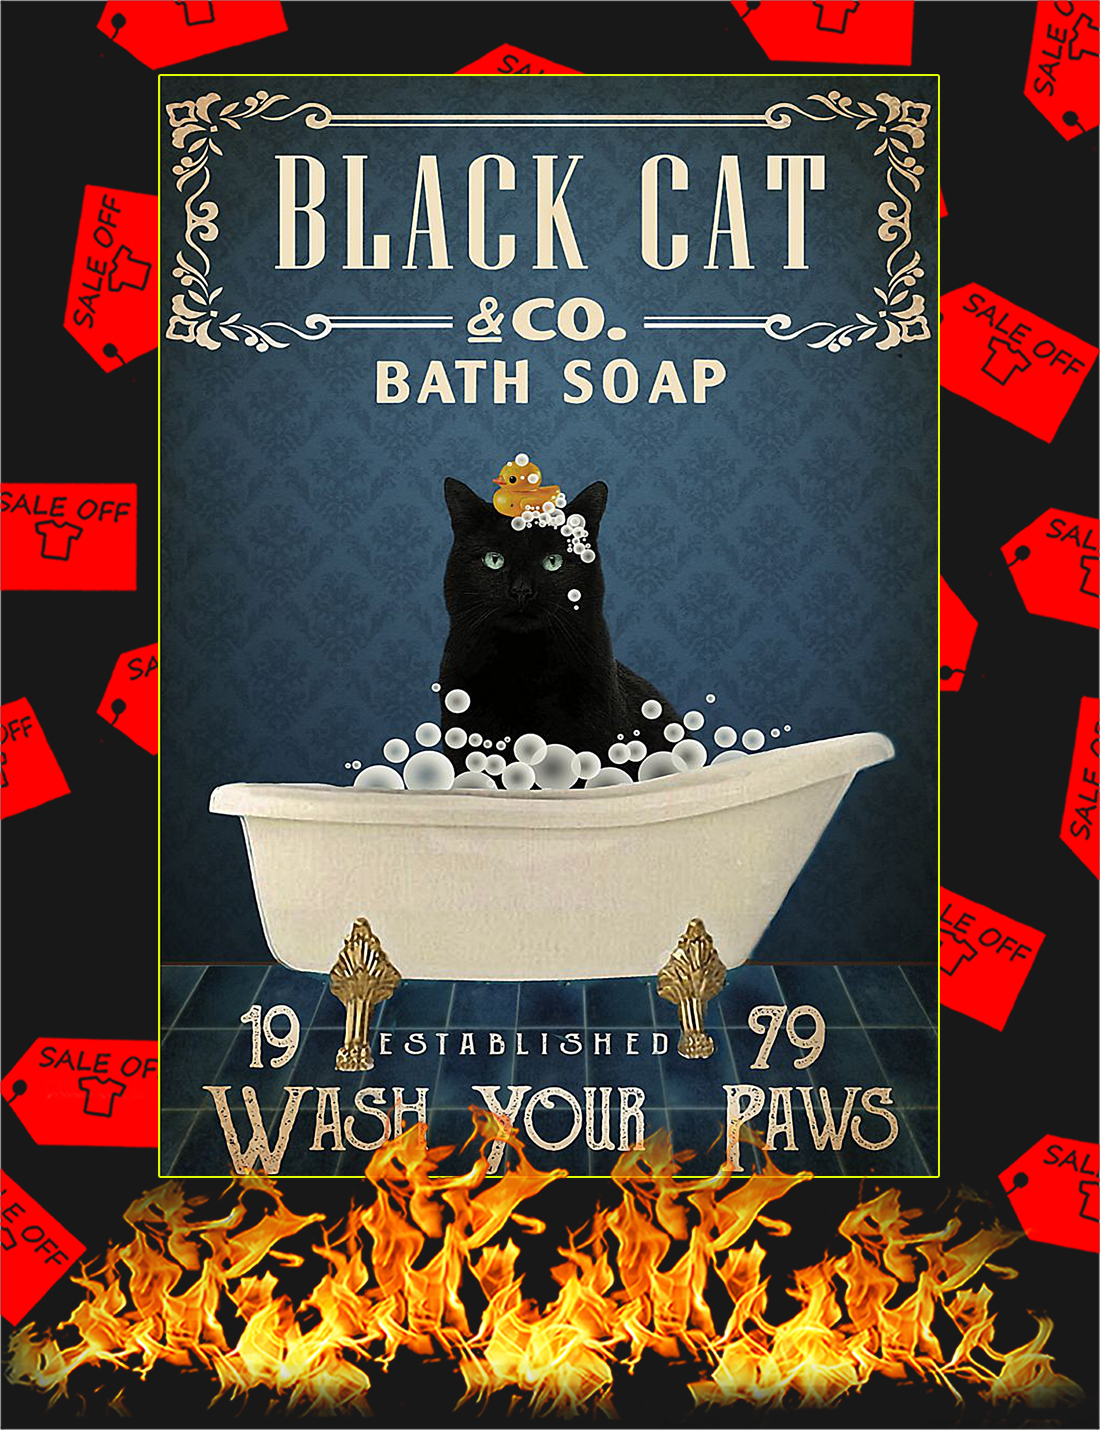 Black cat company bath soap poster - A4